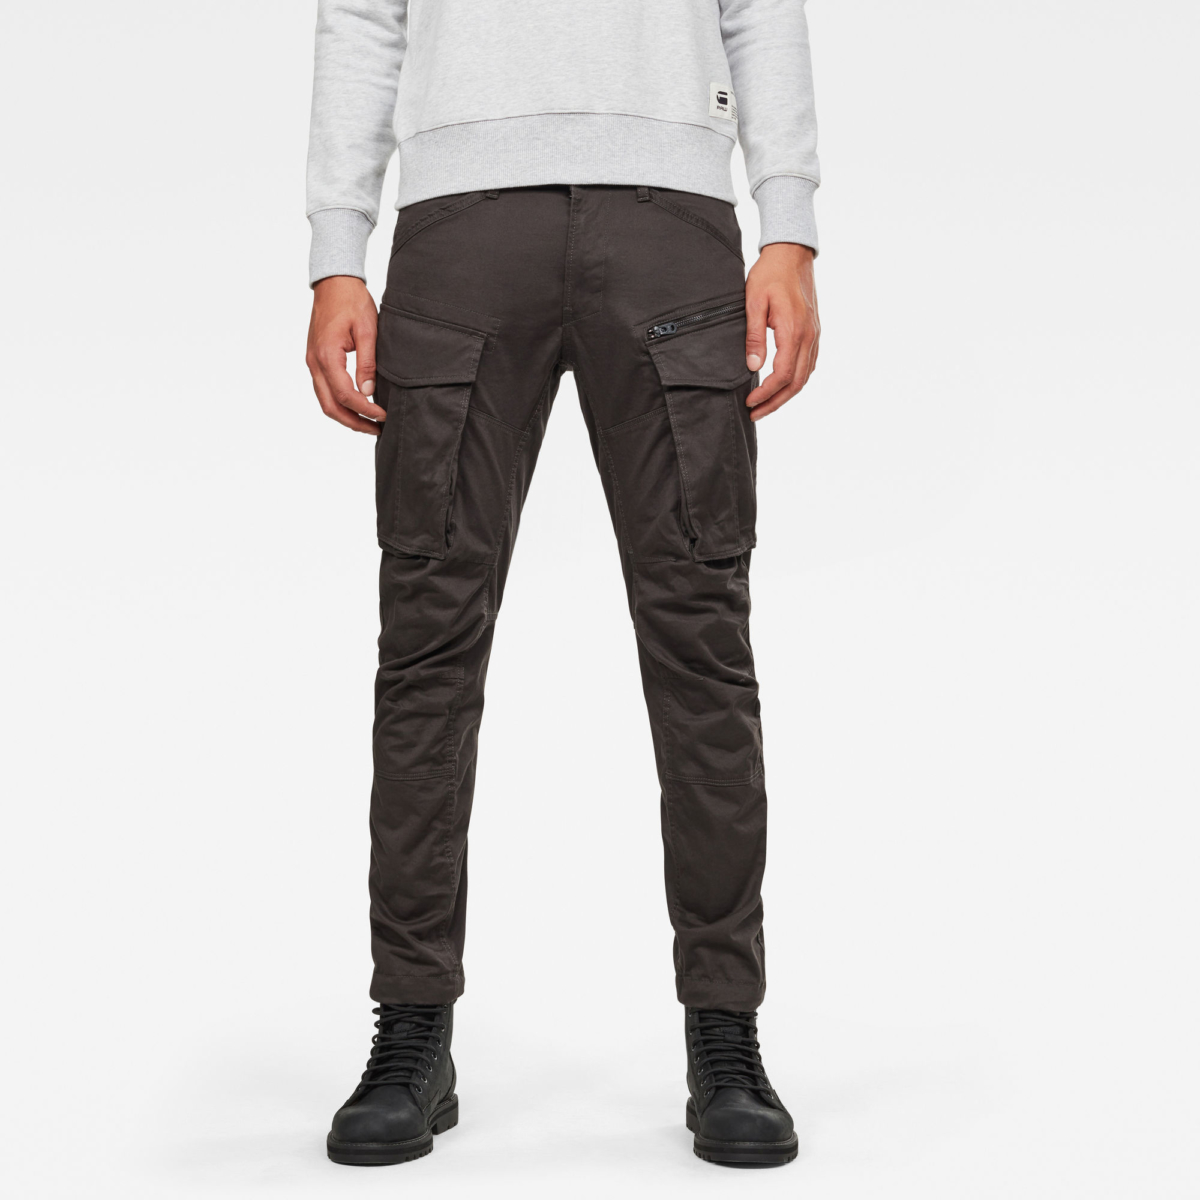 G-Star Male Rovic Zip 3d Straight Tapered Pant Pants Tapered Grey USA - GOOFASH - Mens TROUSERS